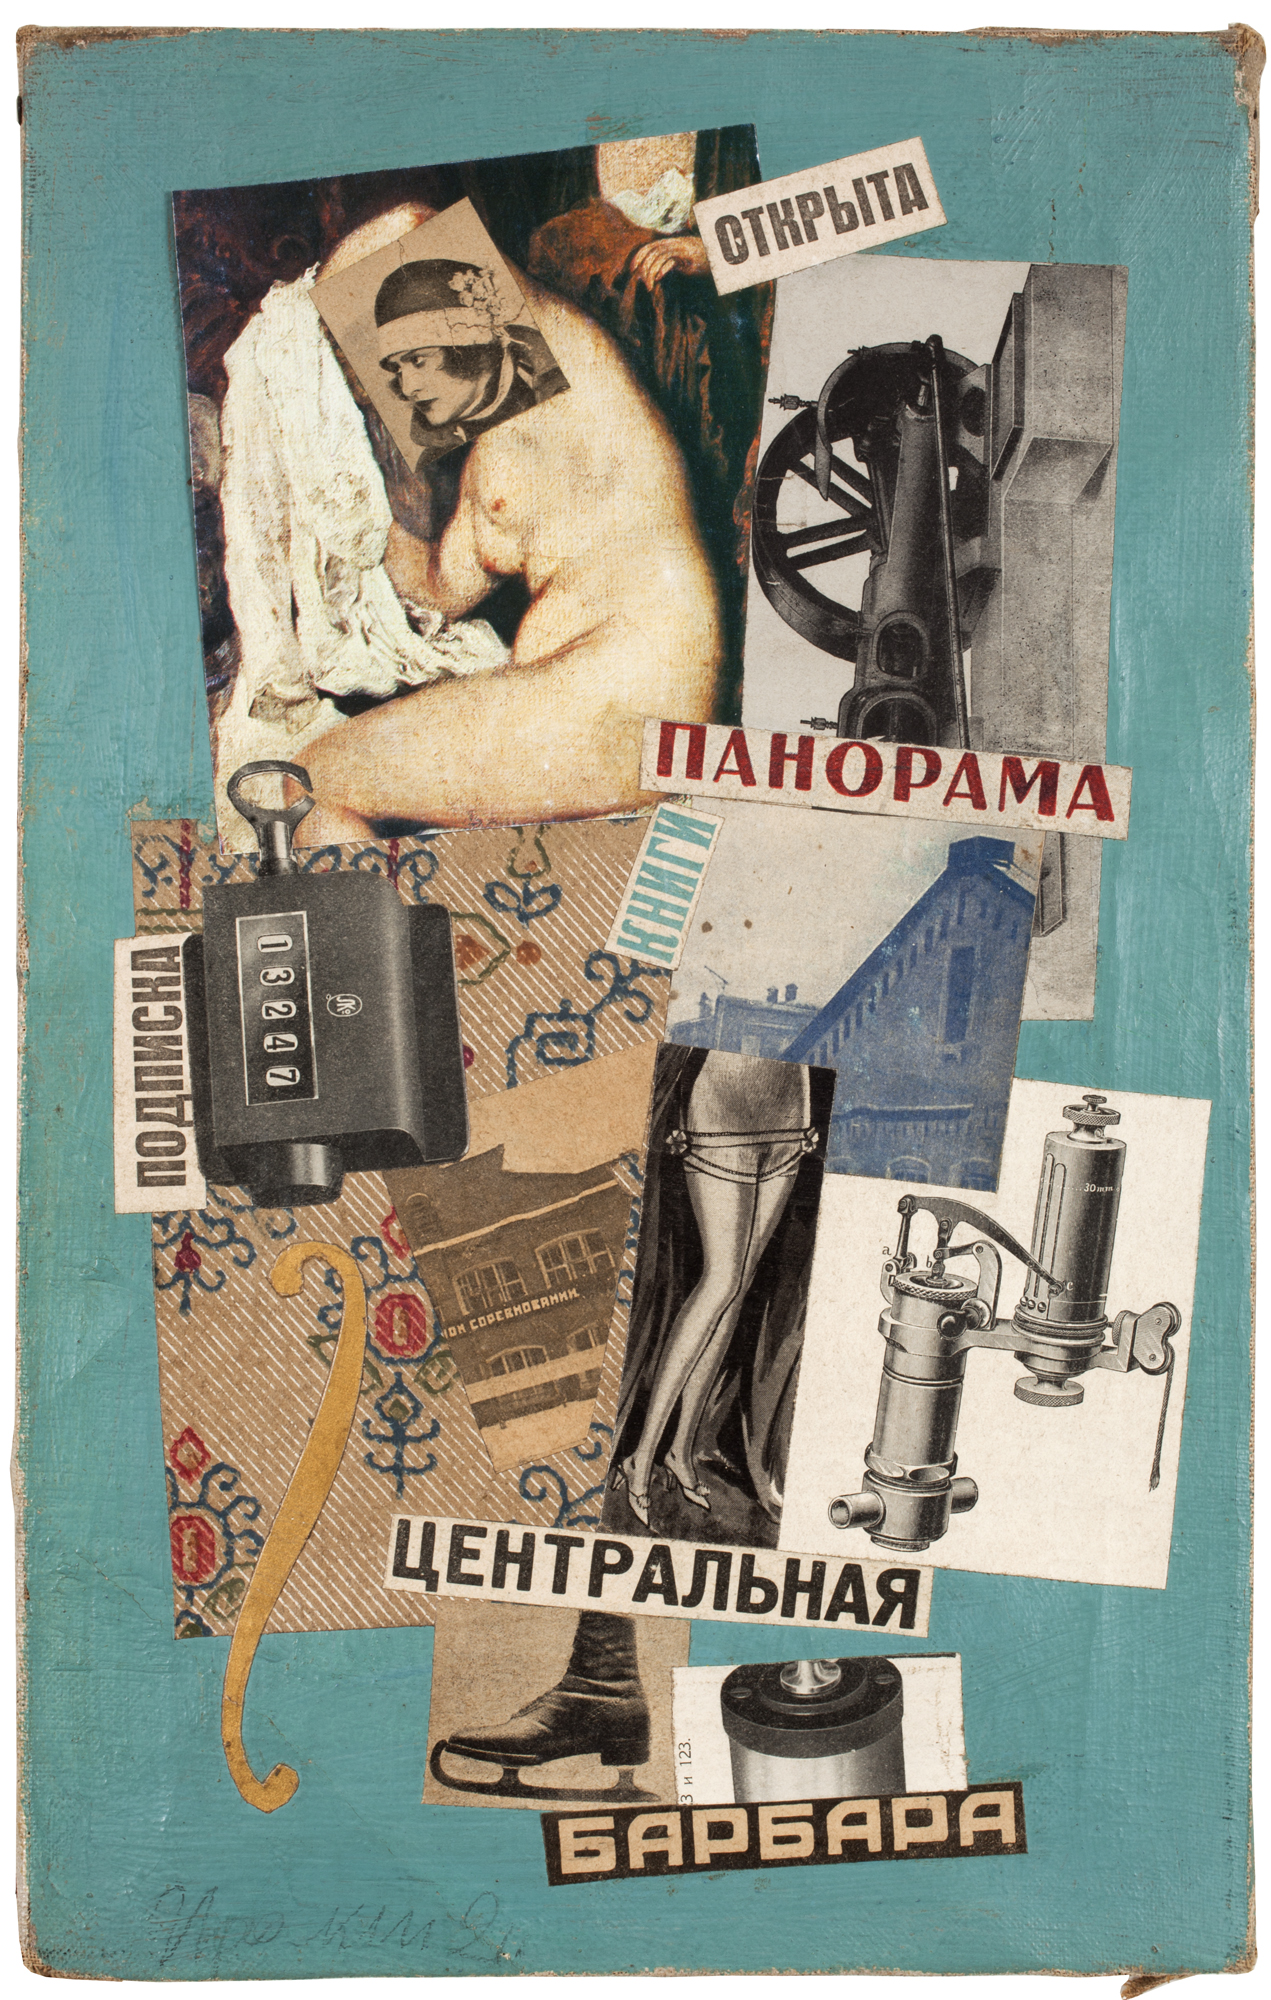 "Unattributed. Unsigned. In the style of Alexander Rodchenko. Text in Russian, lower left front corner, translates to ""Project 2"". Mixed media on canvas. 34 x 24 cm."